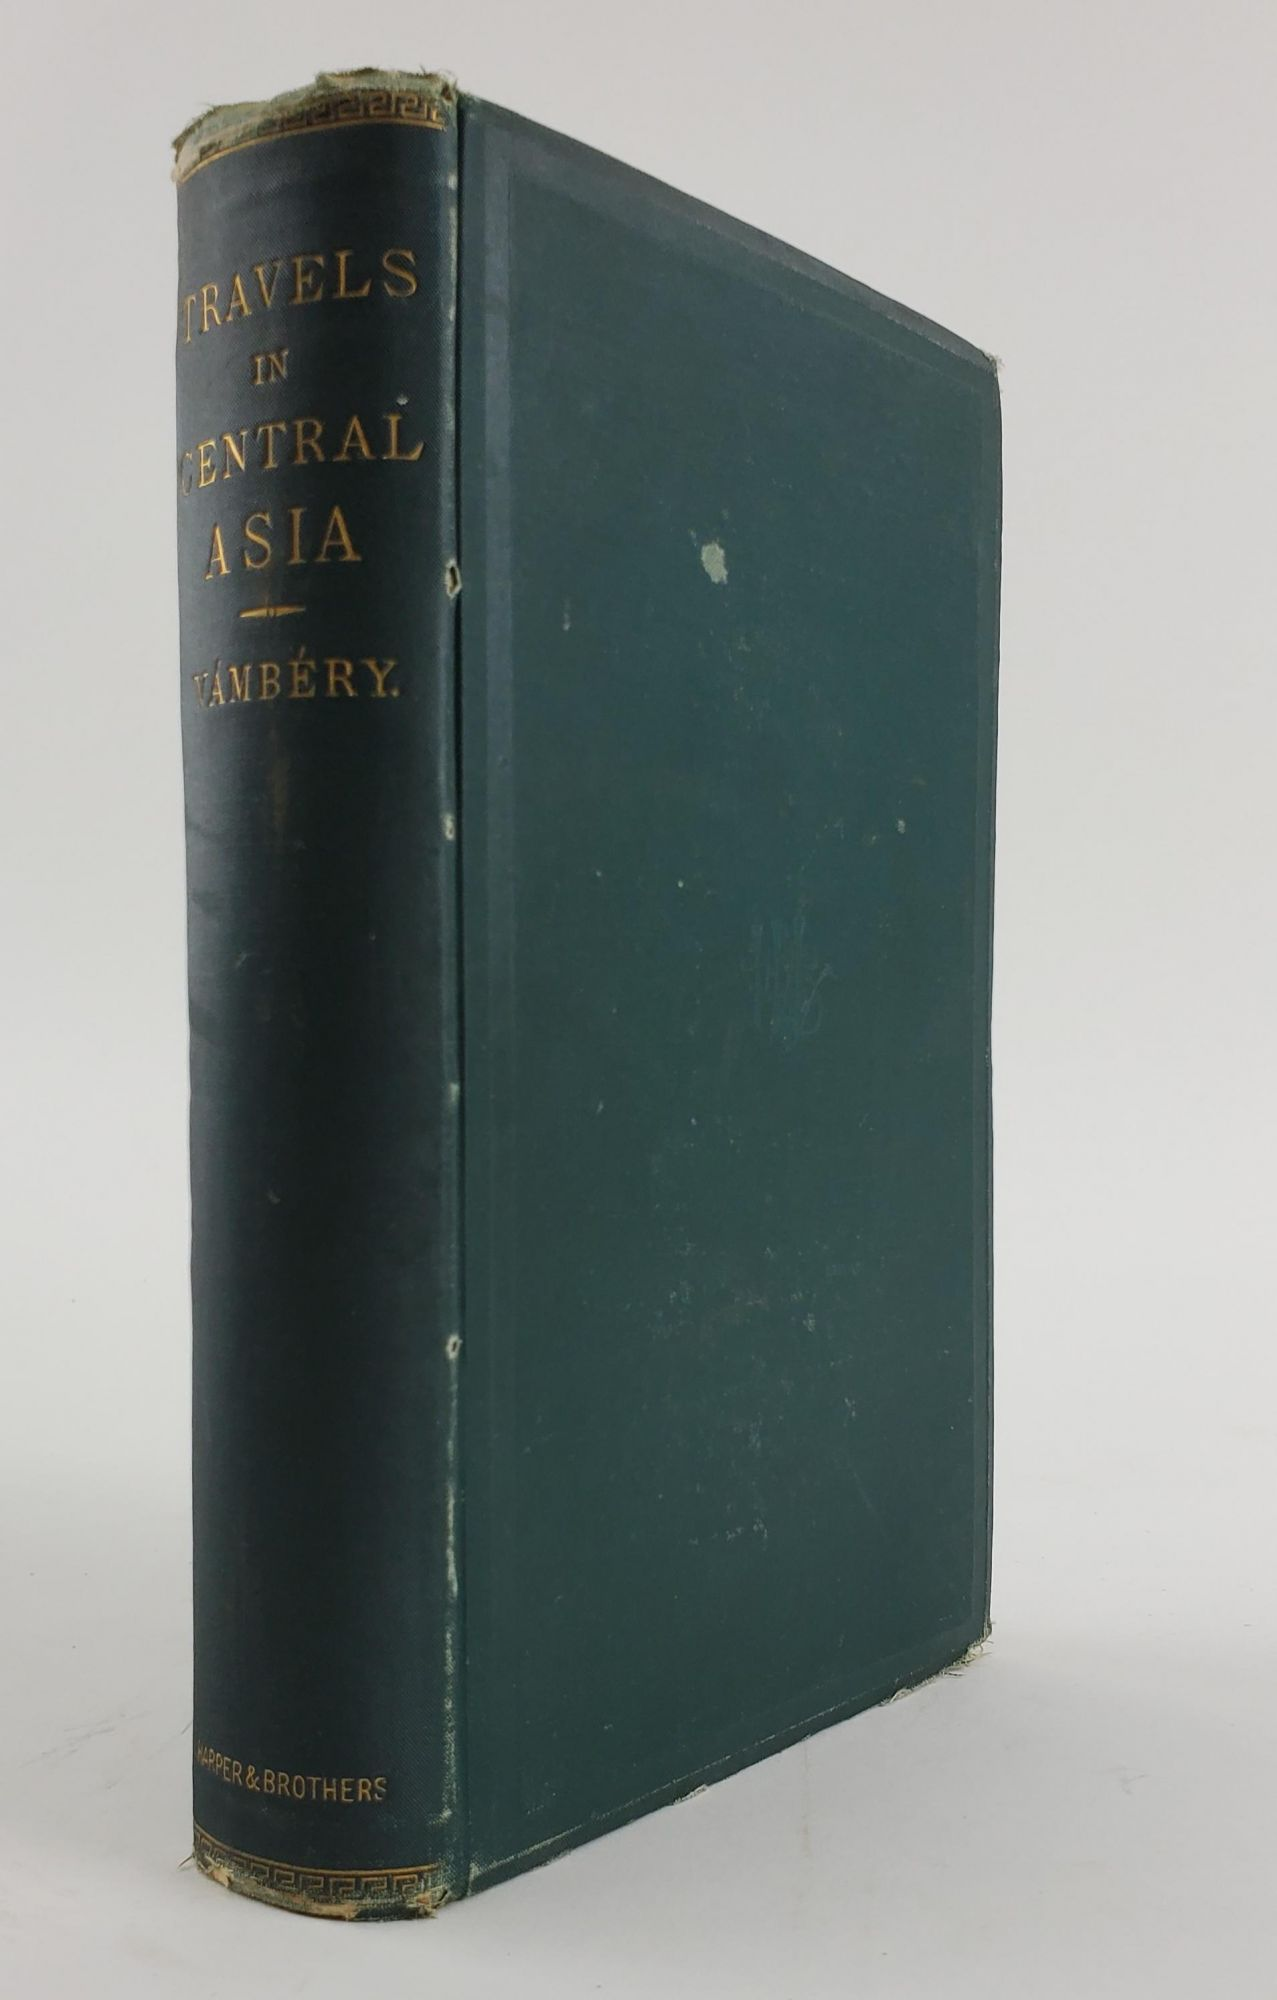 Travels in Central Asia: Being an Account of a Journey from Teheran across the Turkoman Desert of the Eastern Shore of the Caspian to Khiva, Bokhara, and Samarcand. Arminius Vambery.